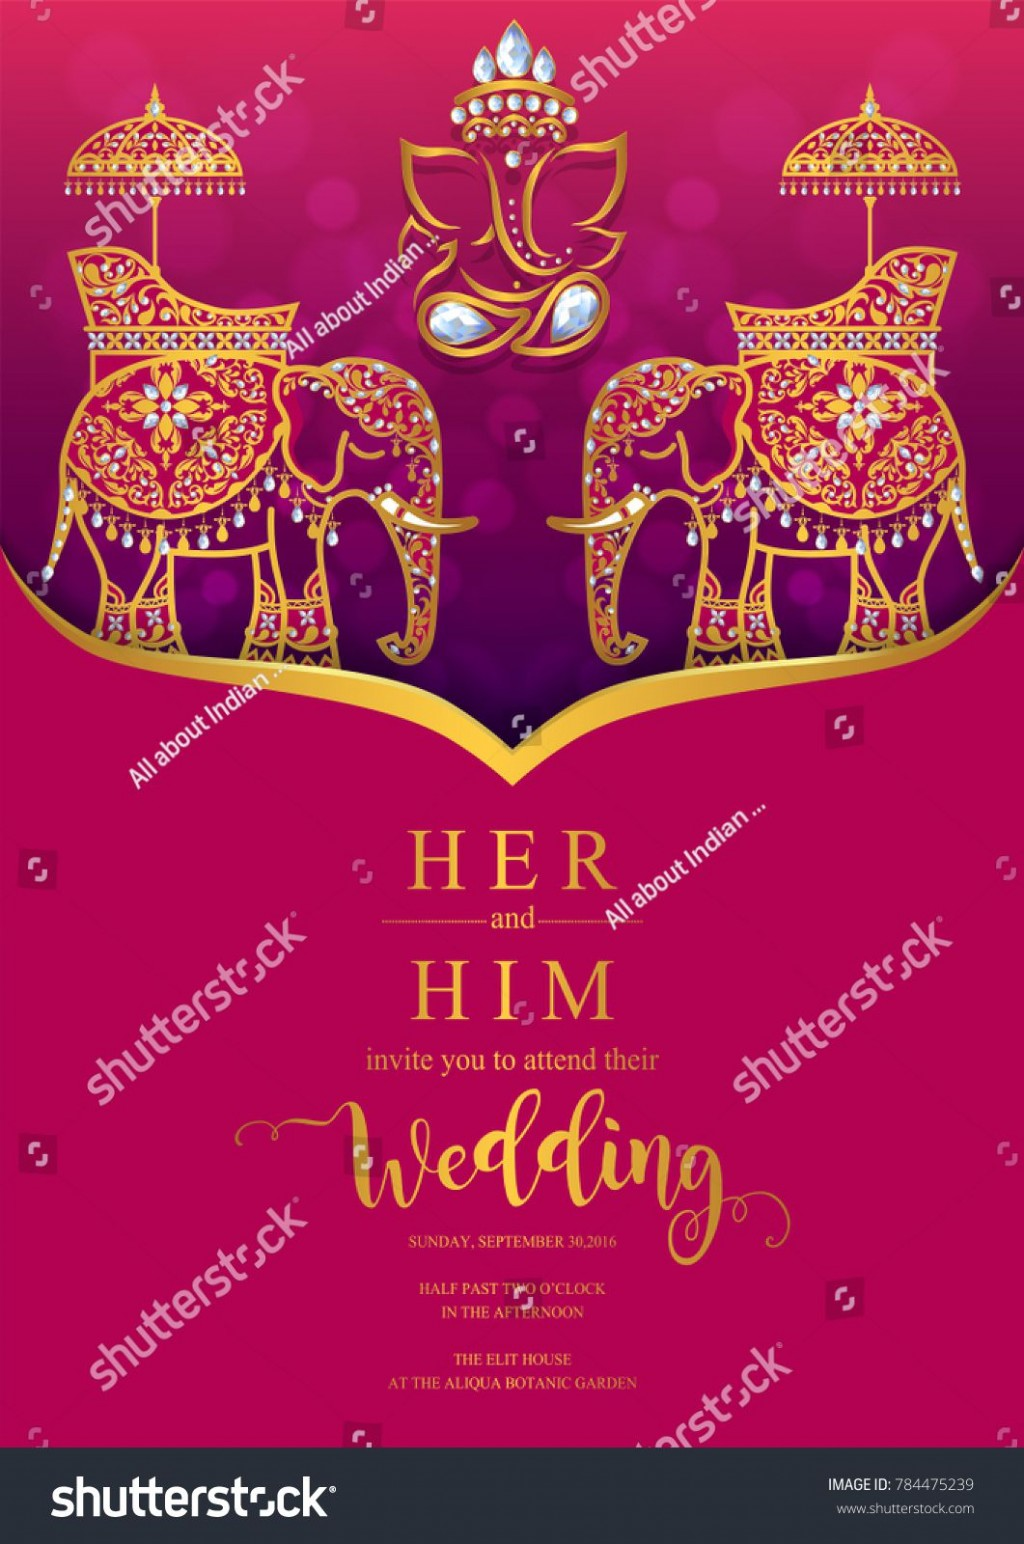 009 Formidable Indian Wedding Invitation Template Inspiration  Psd Free Download Marriage Online For FriendLarge